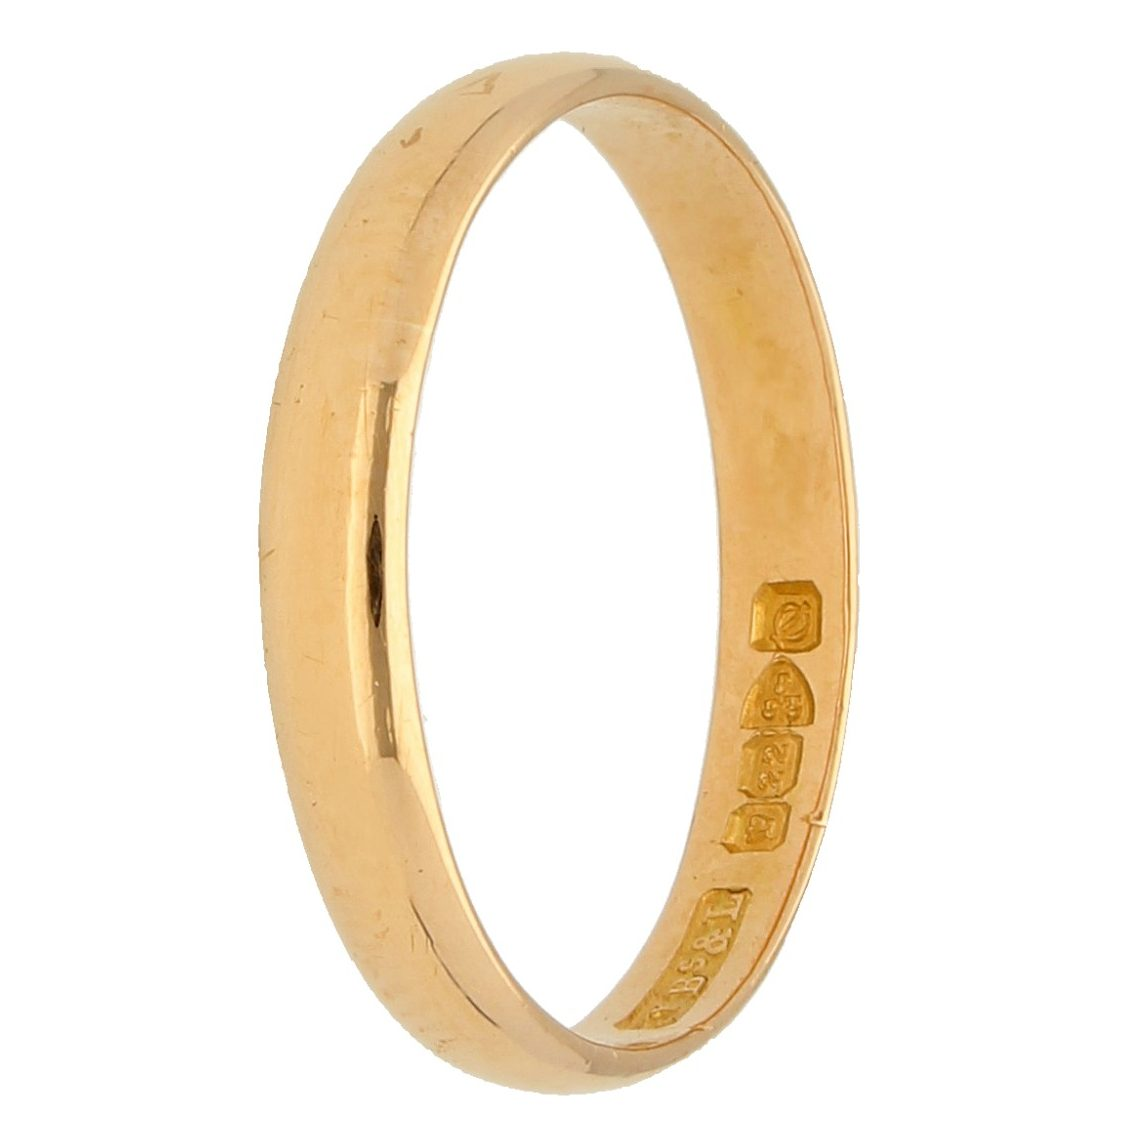 3mm 22ct Yellow Gold Plated Sterling Silver D Shaped Wedding Ring Band